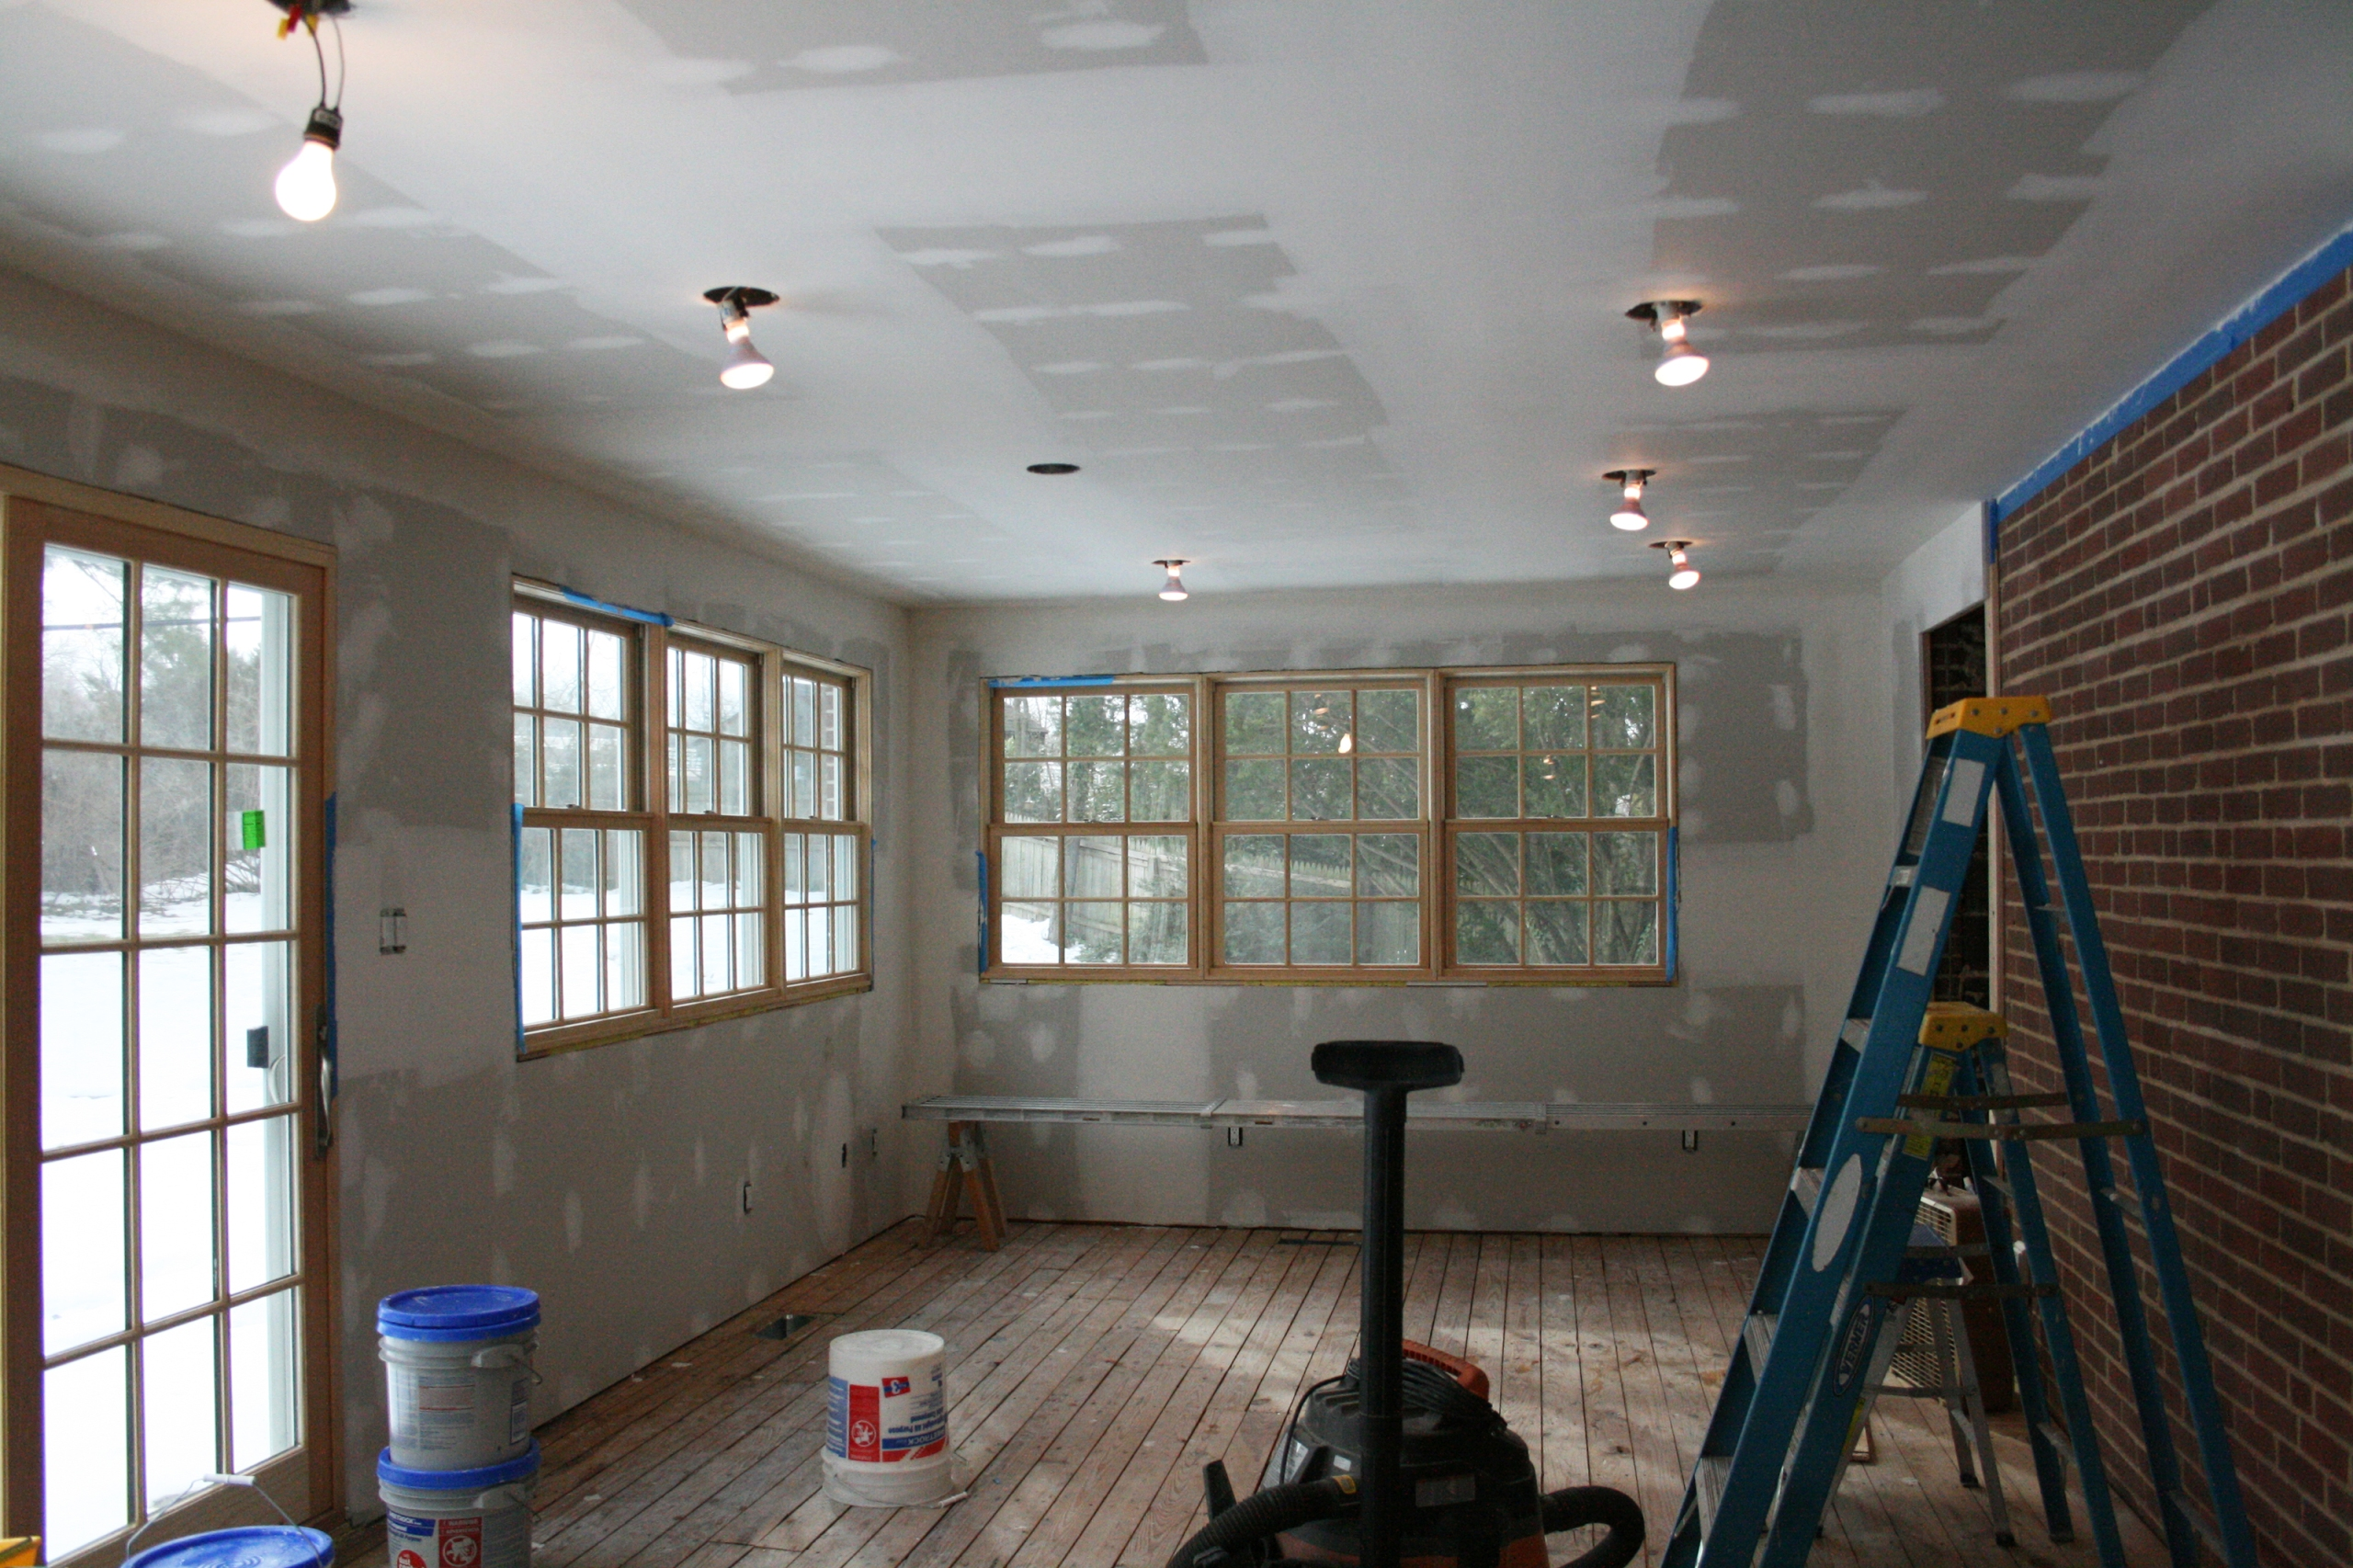 Room in home during construction